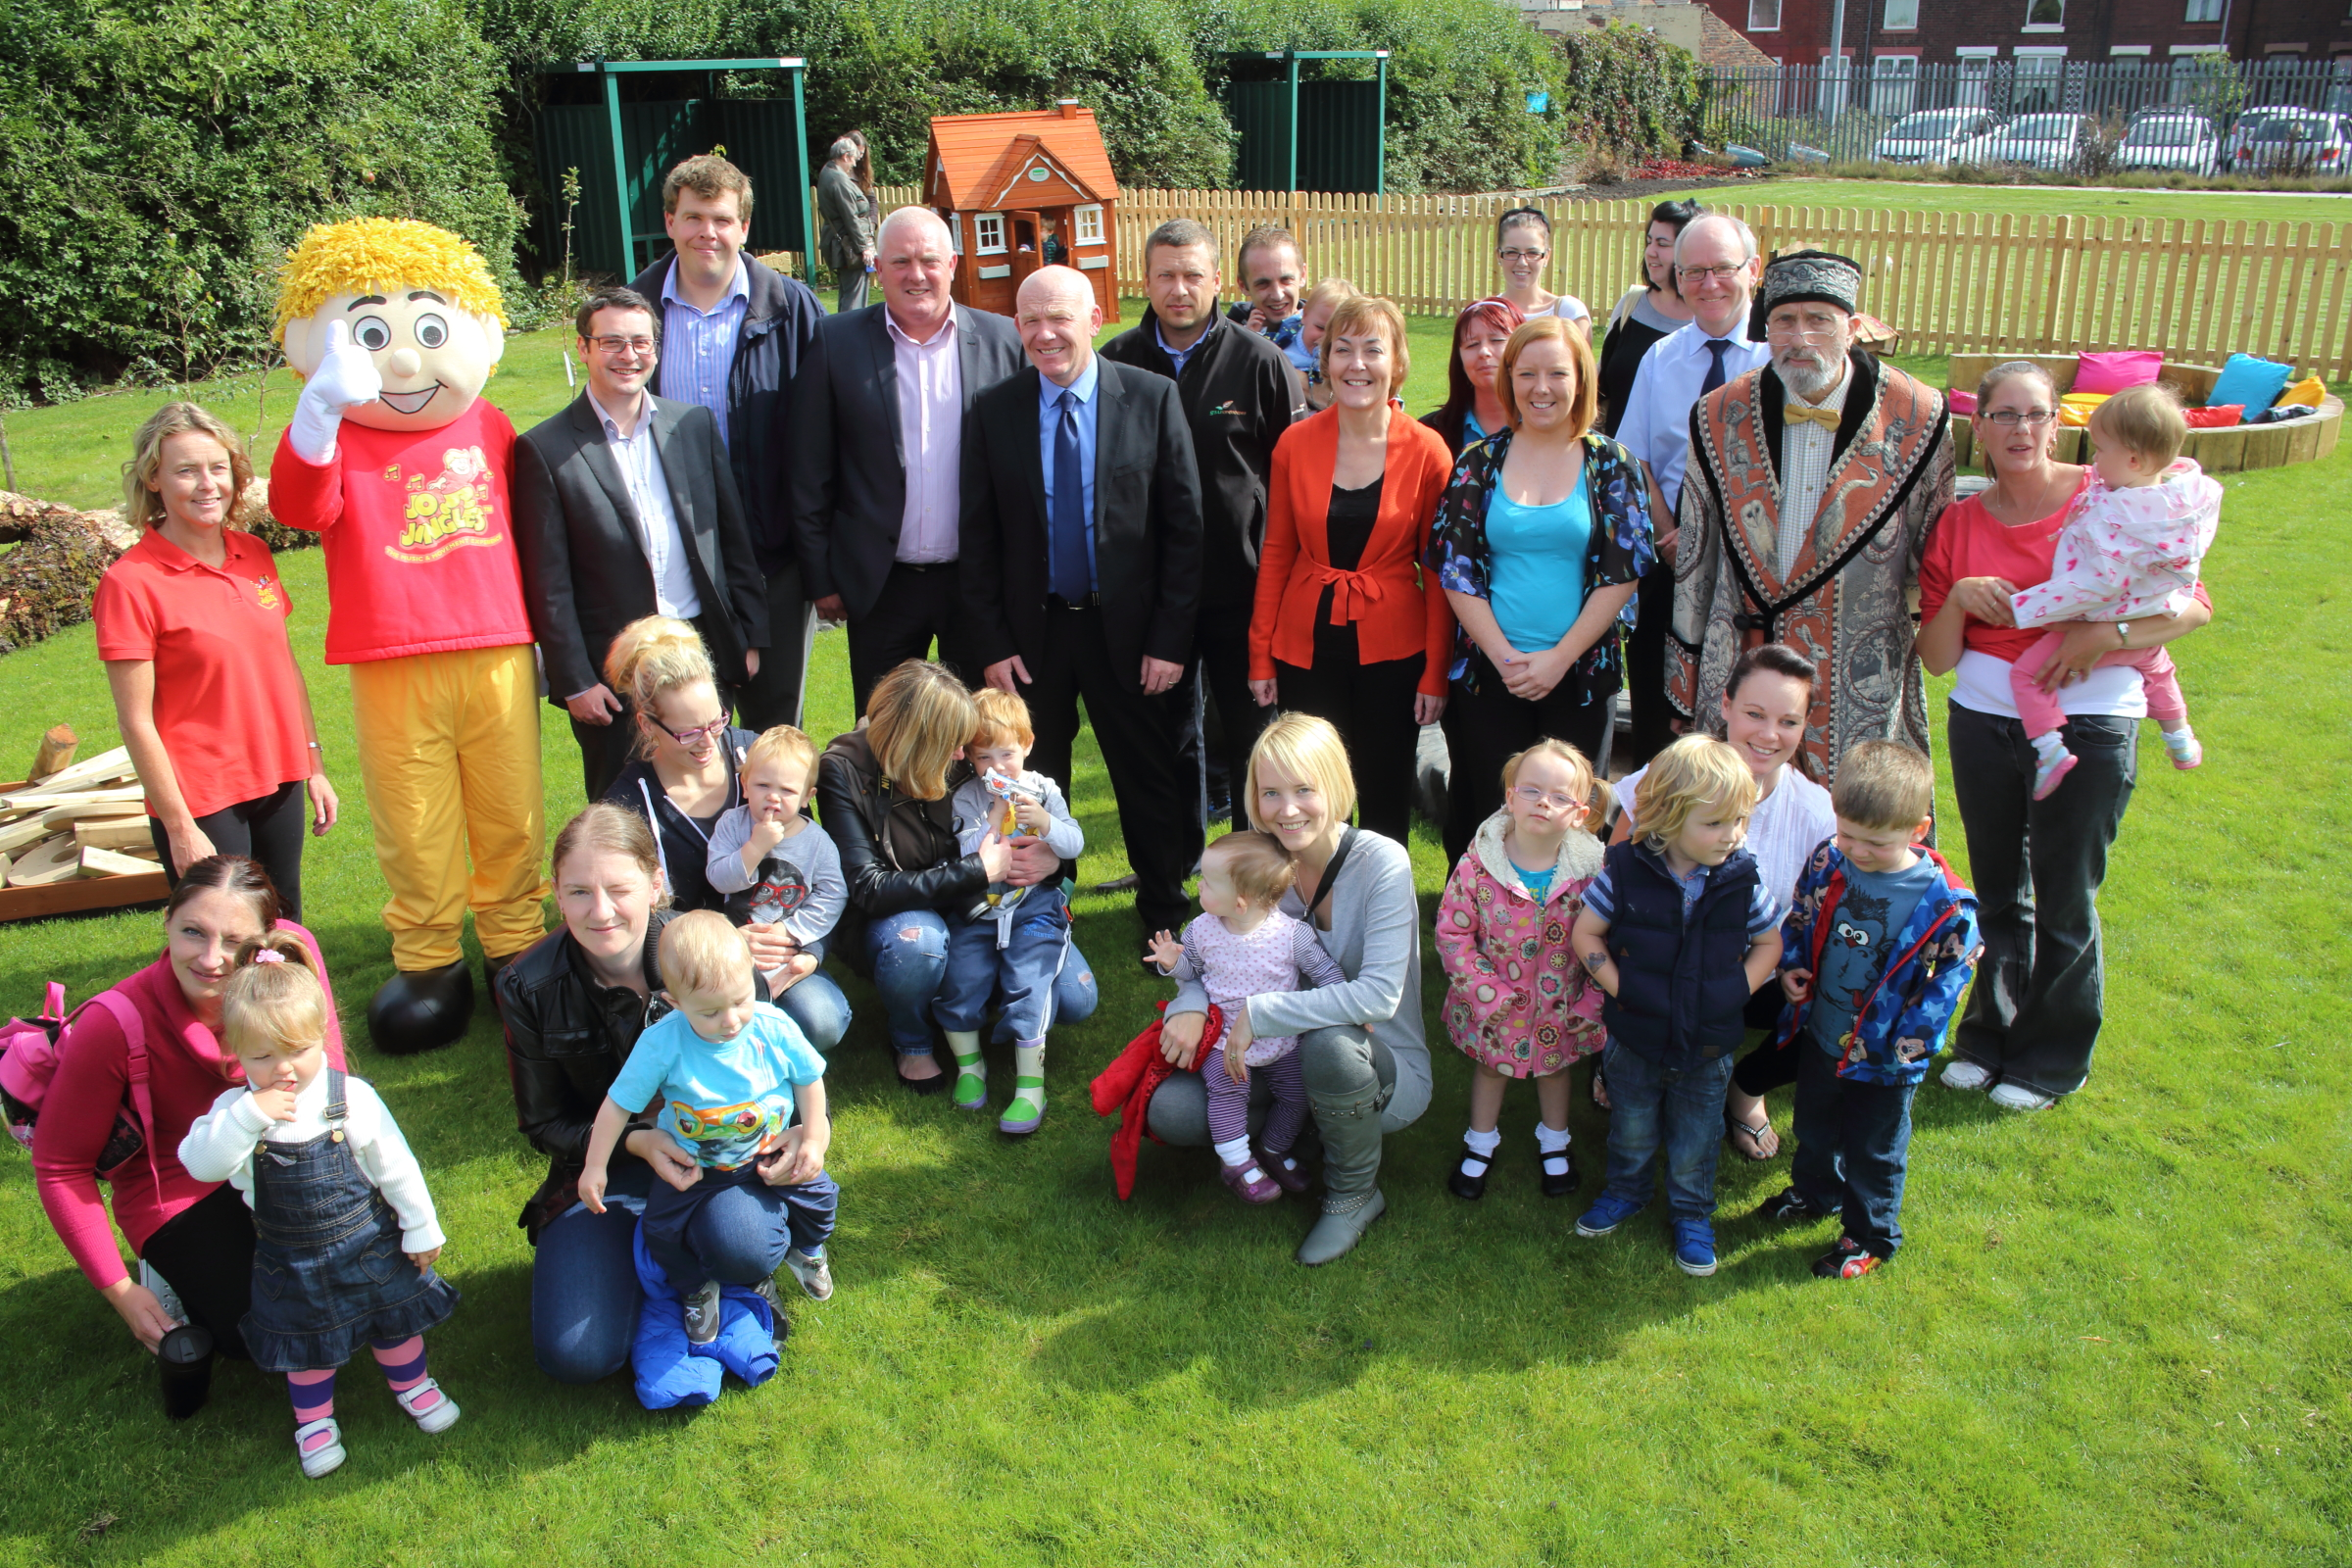 Play area dream made a reality for Wigan children's centre